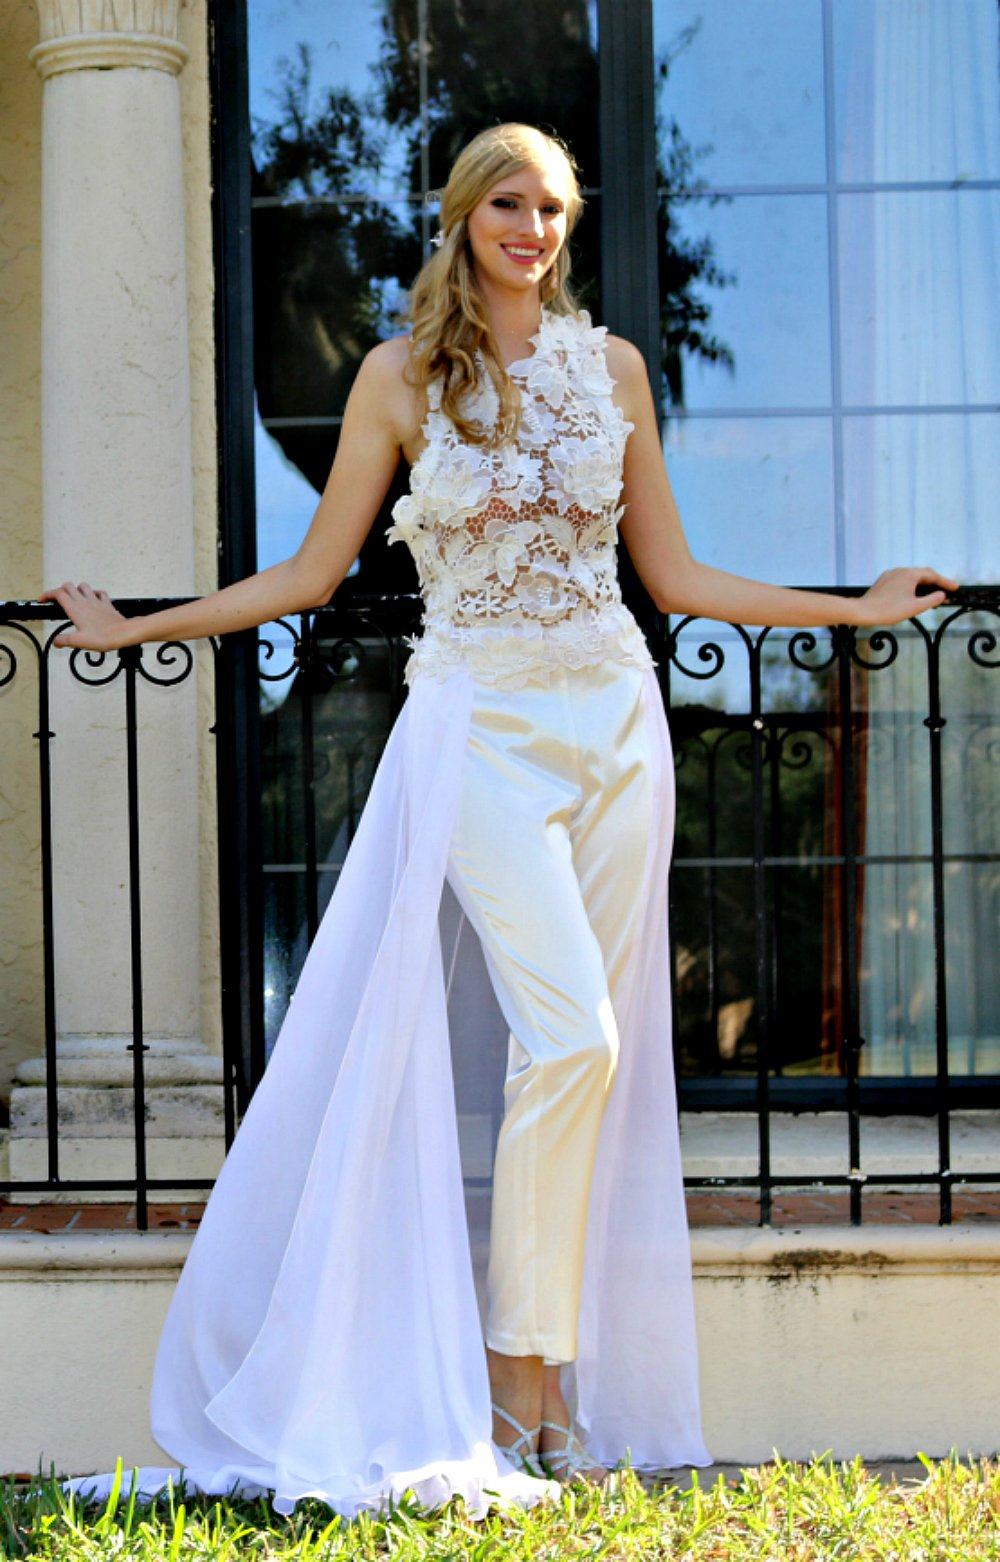 58b7e89940 Desert Rose Modern Bride - Wedding Dresses - Orlando Bridal Online ...